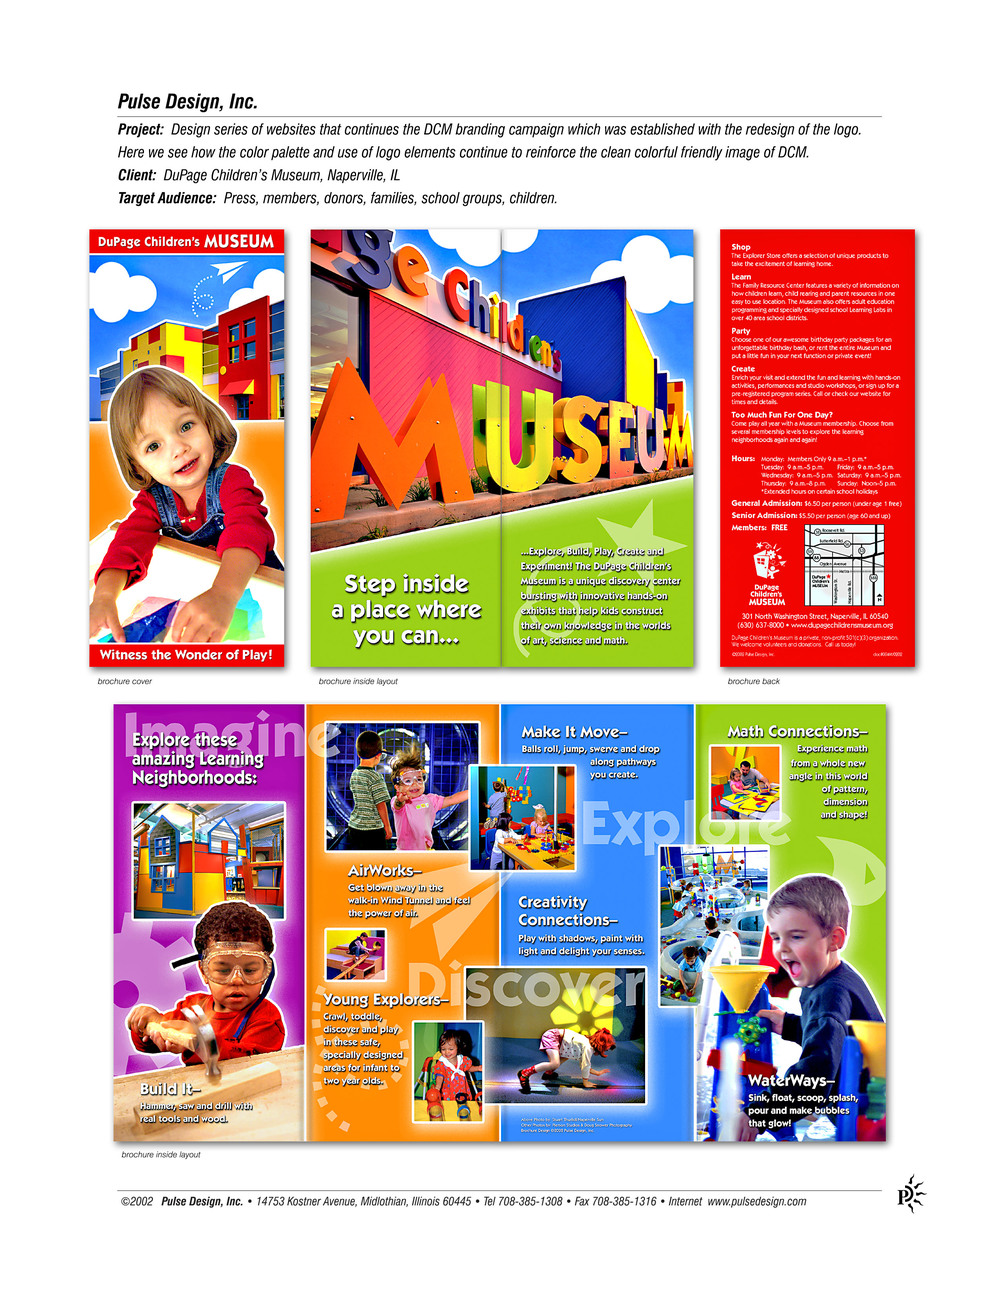 DCM-Brochure-4Color-Pulse-Design-Inc.jpg